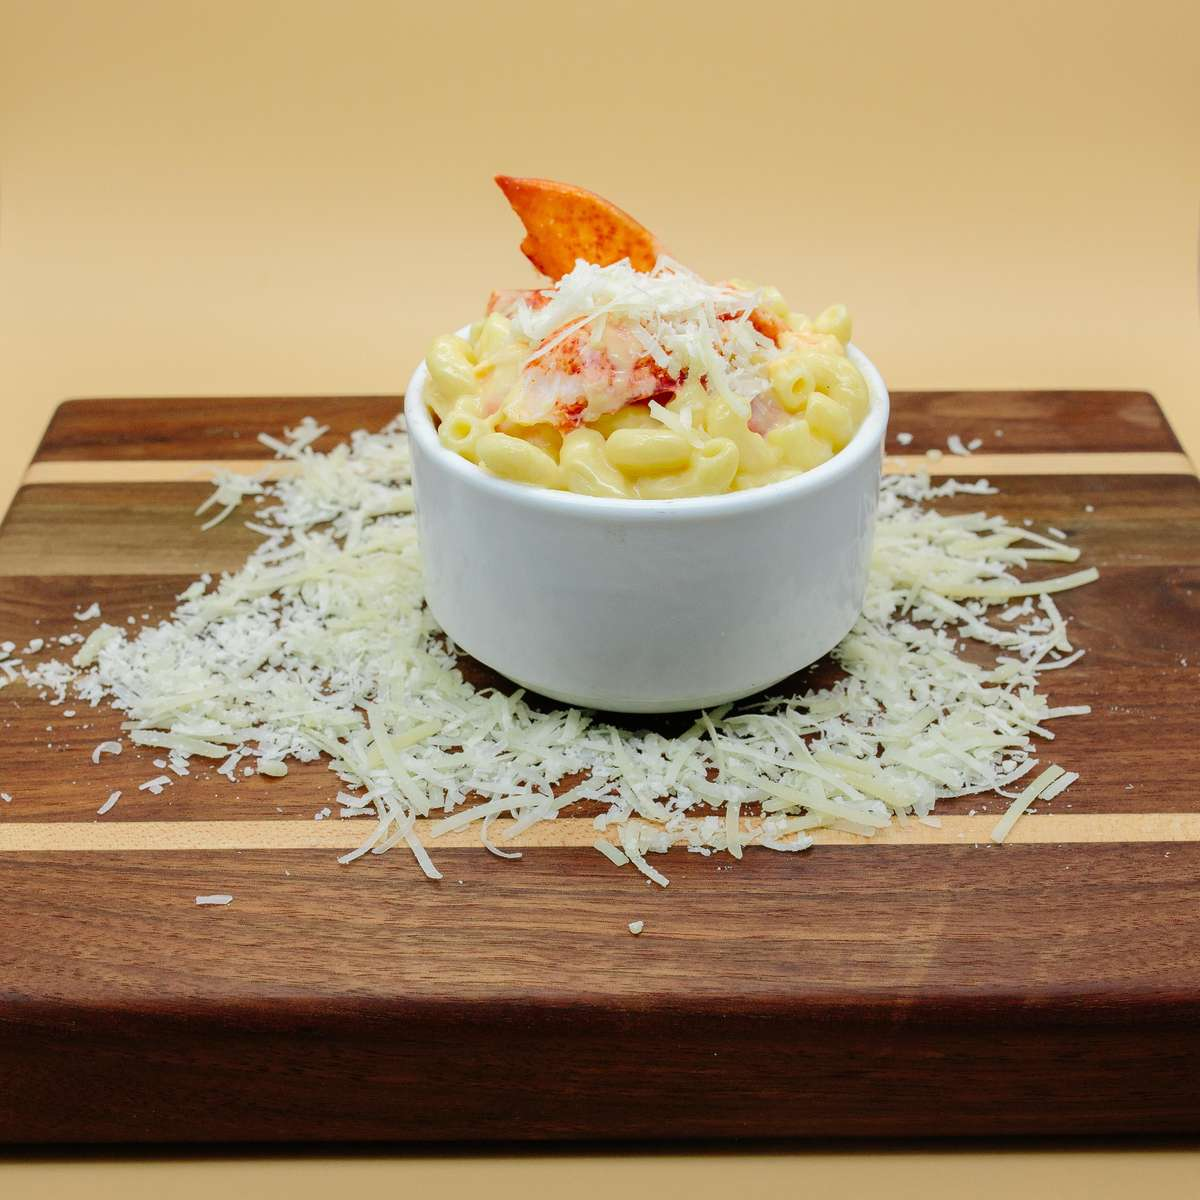 Truffled lobster mac and cheese